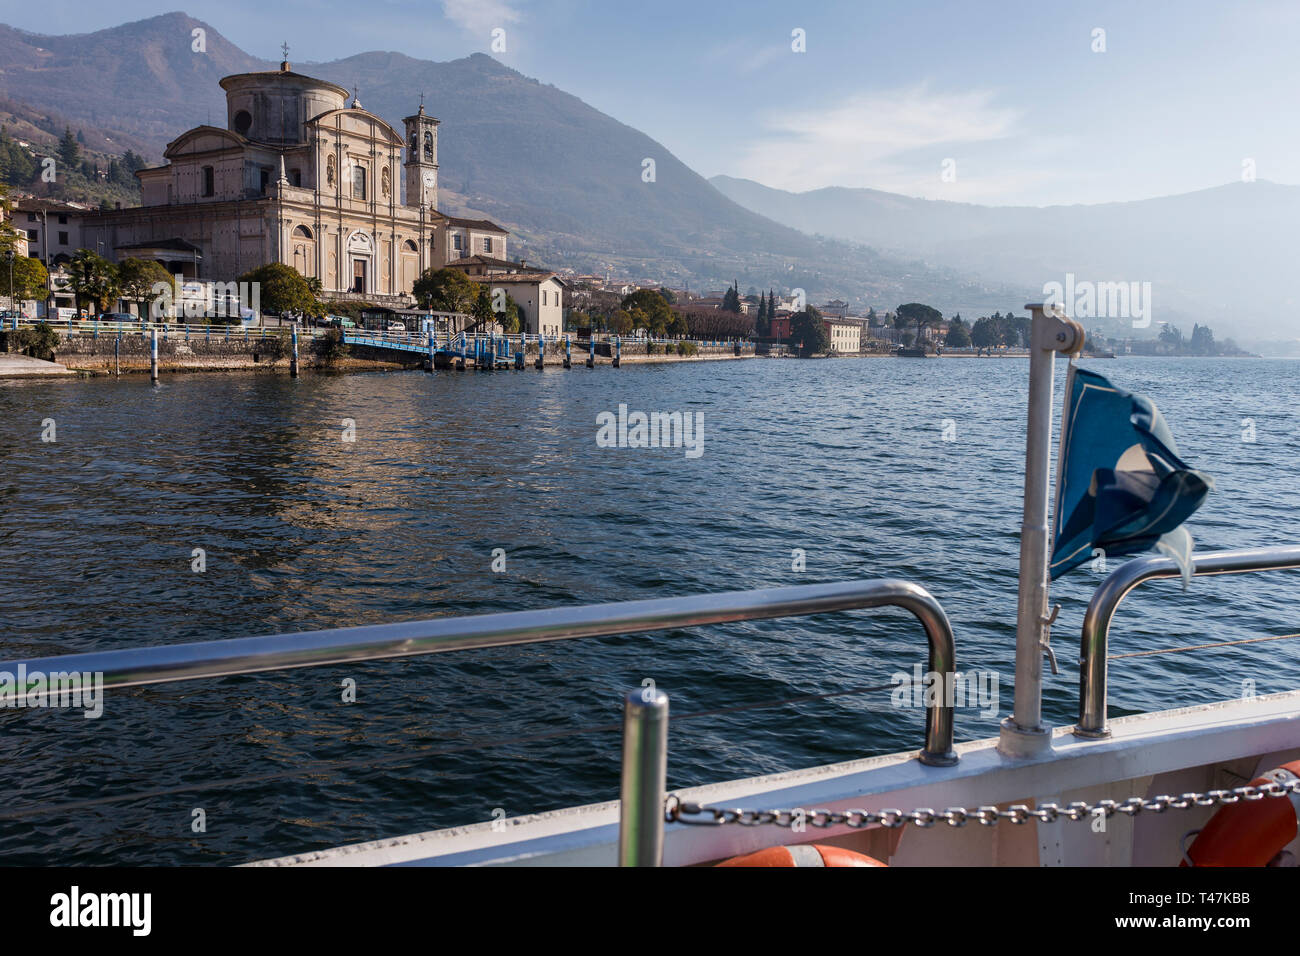 Approaching the town of Sale Marasino, Lake Iseo, Lombardy, Italy - Stock Image